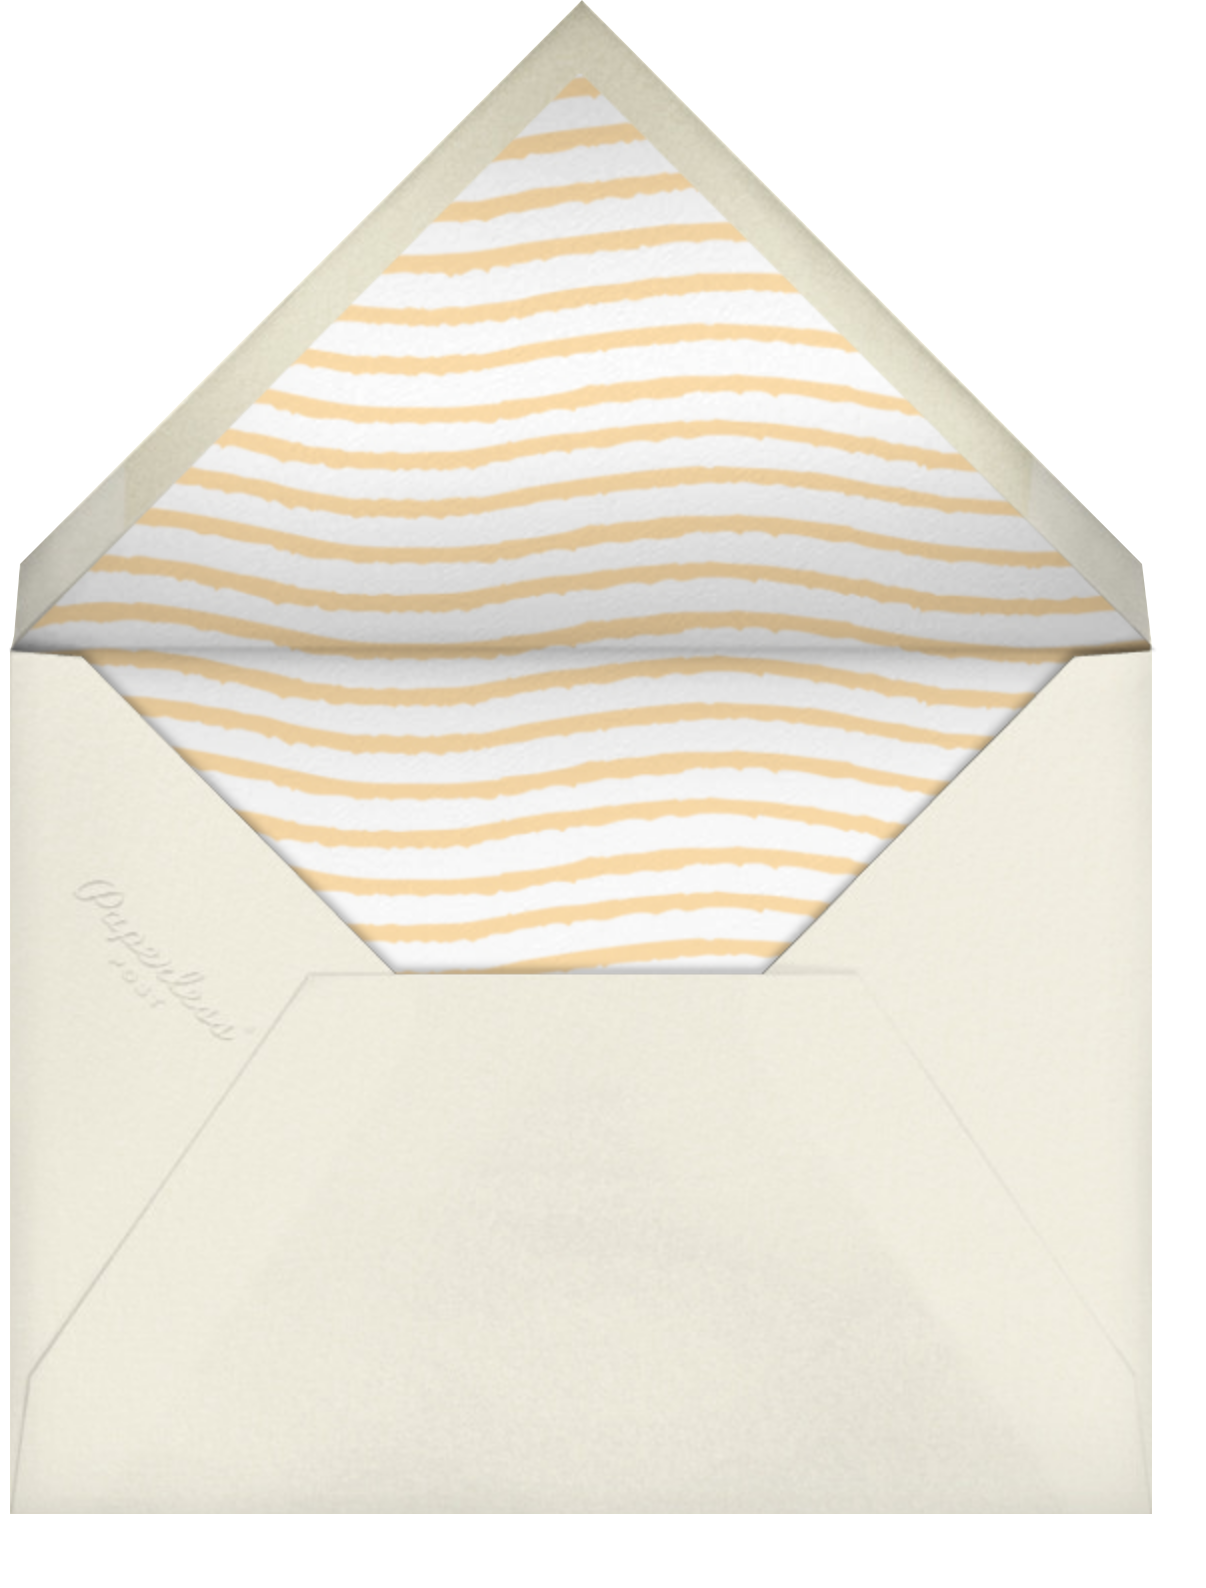 High 5 - Tan - The Indigo Bunting - Congratulations - envelope back